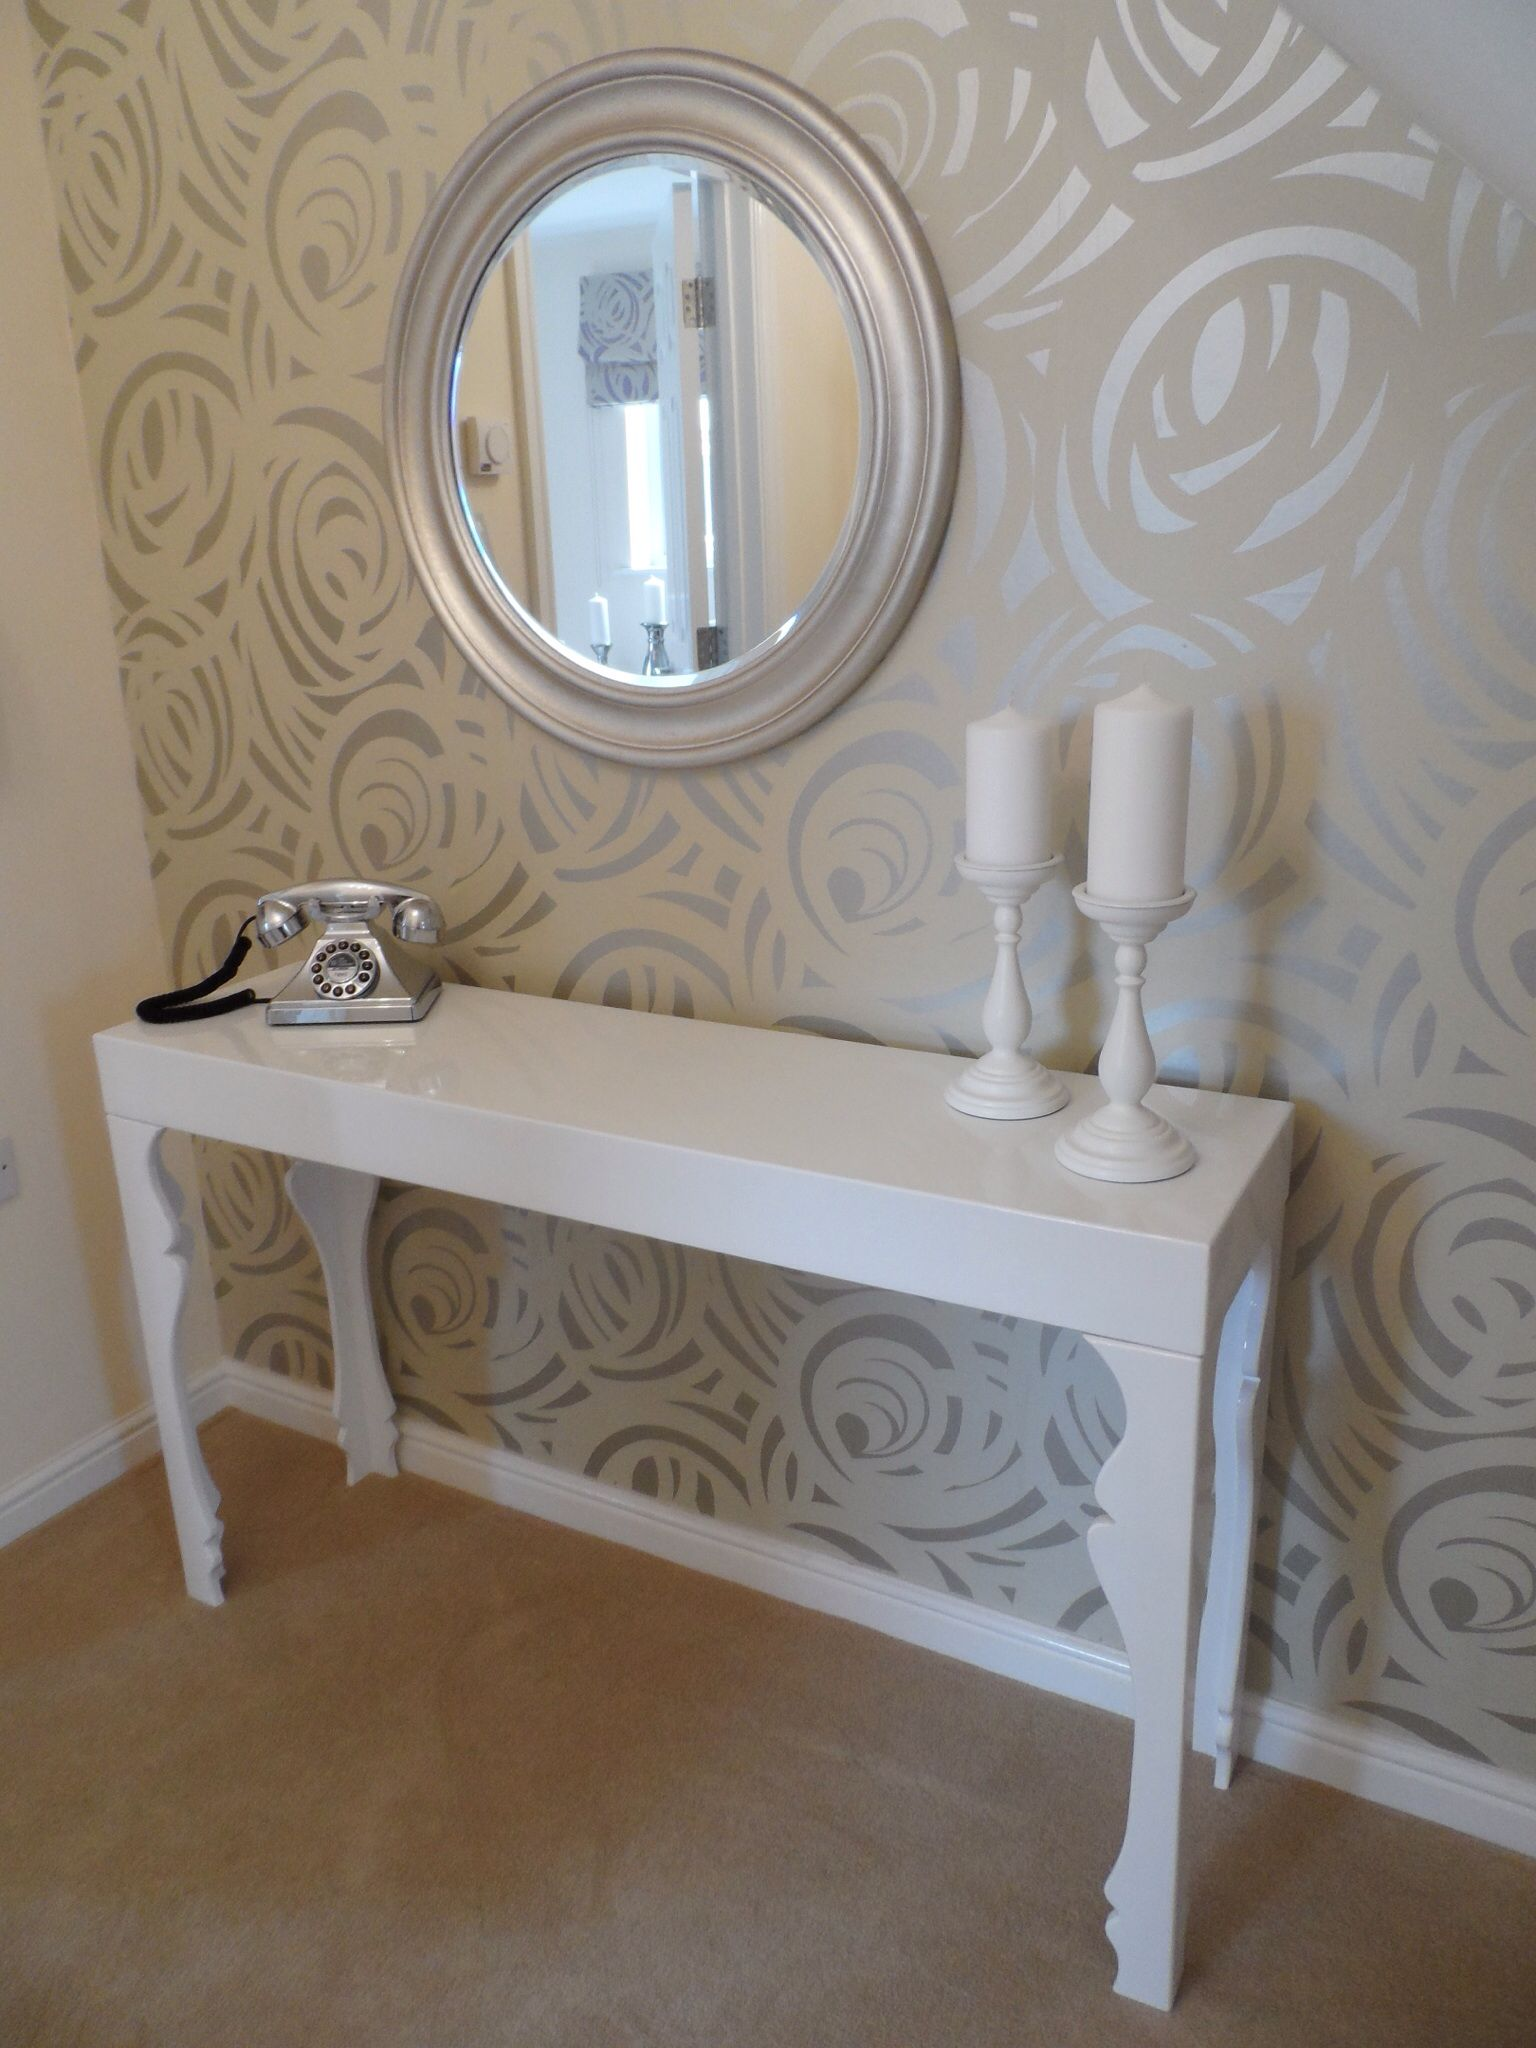 Damask wallpaper hallway ideas  Our Show Home at Cae Nant elegant hallway featuring Harlequin